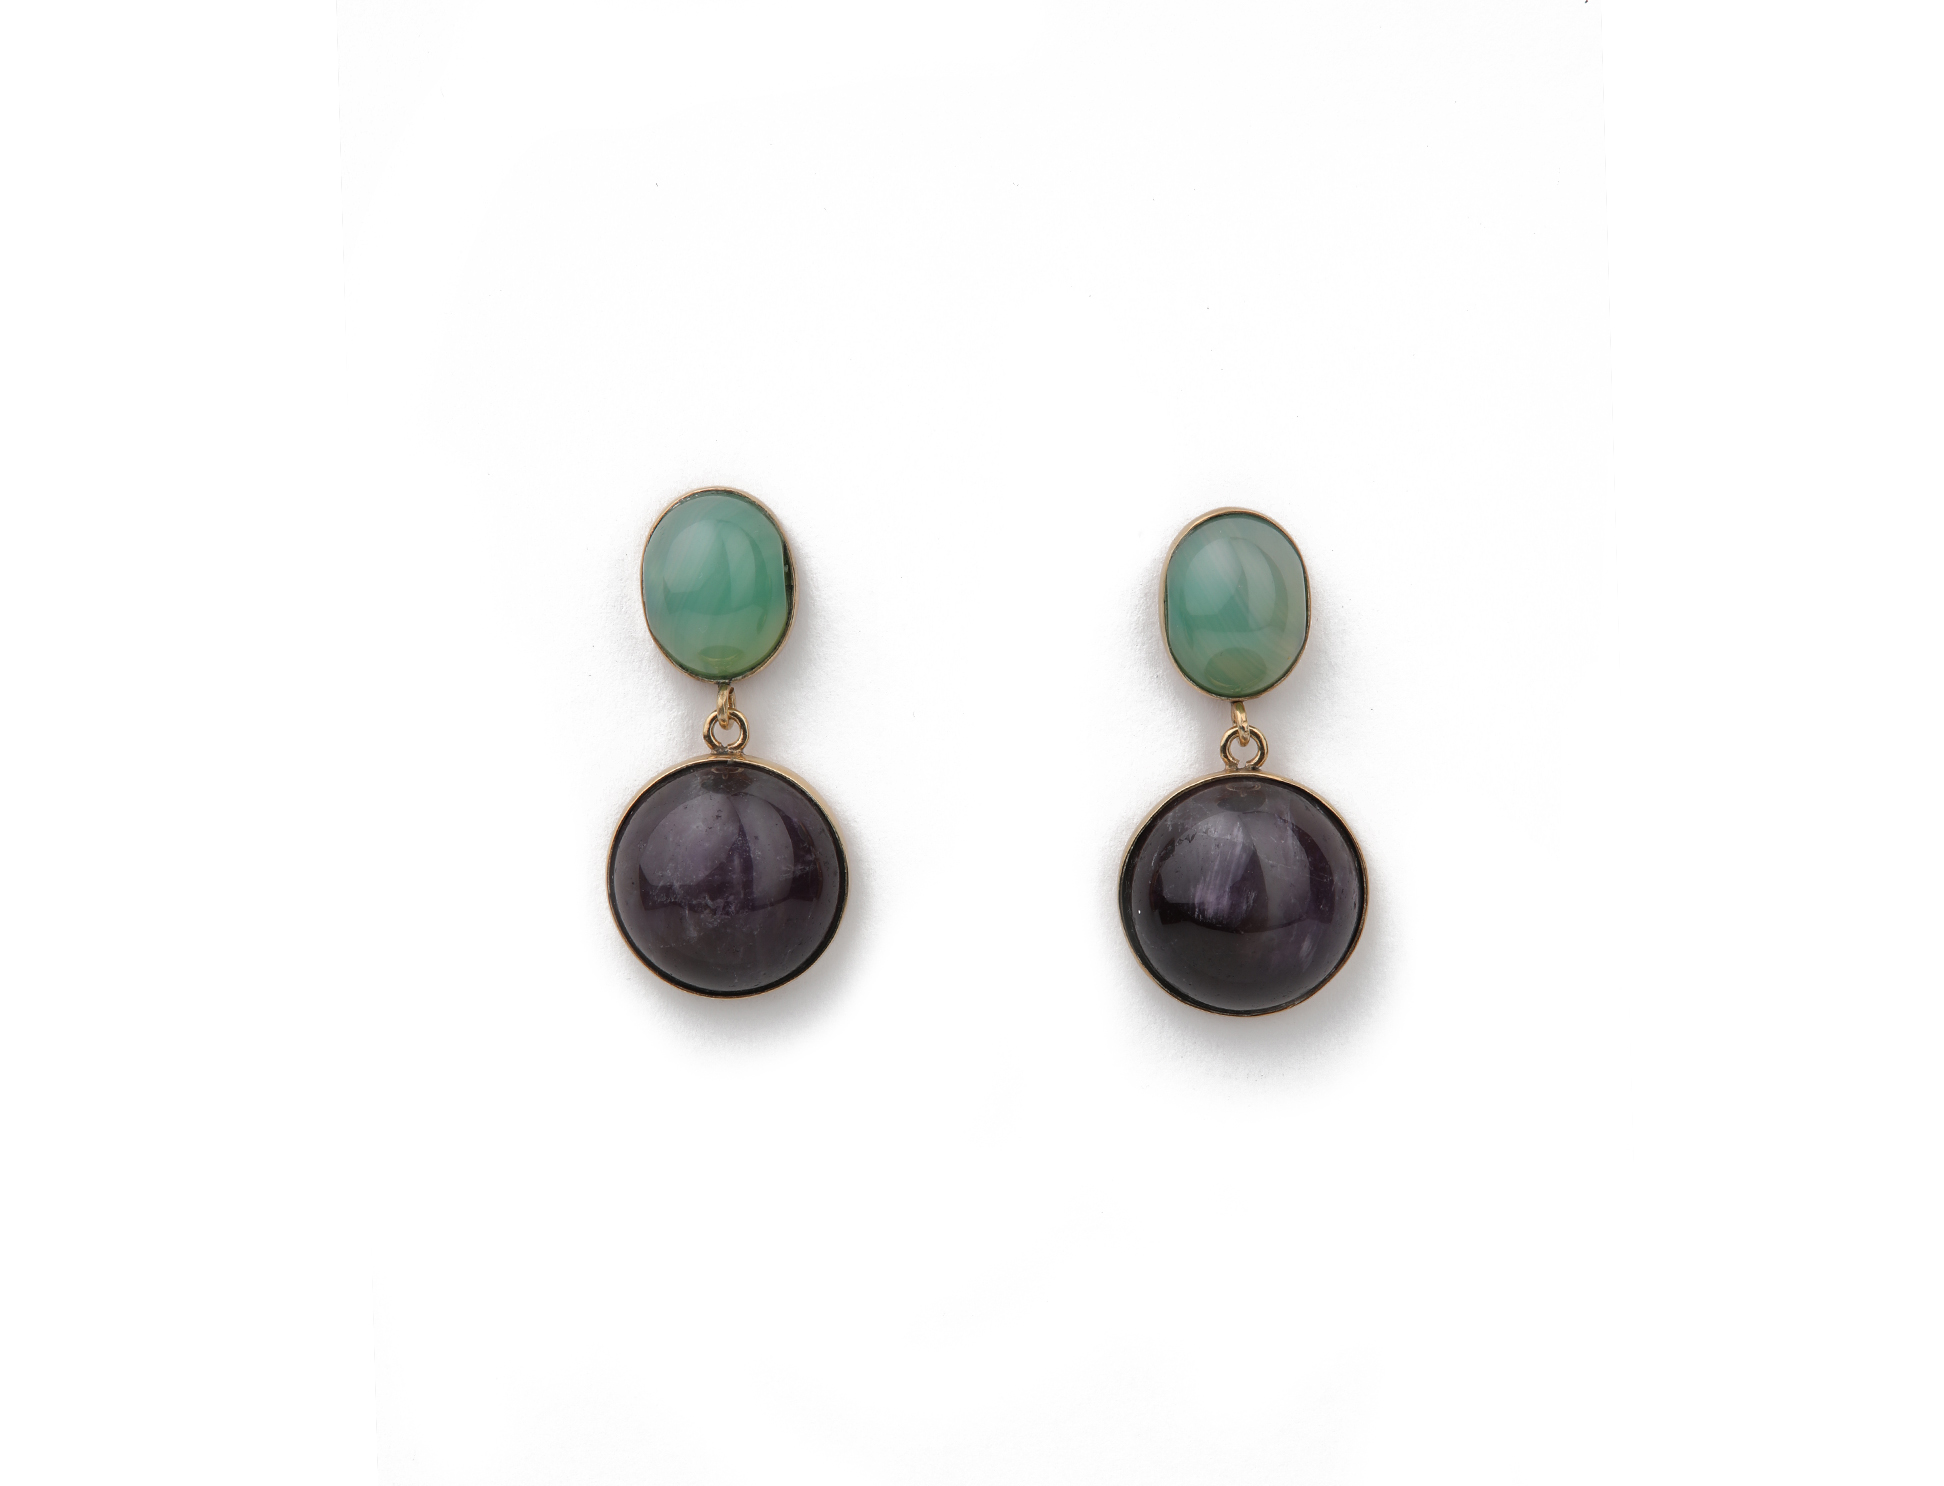 Silver earrings with amethyst and green quartz